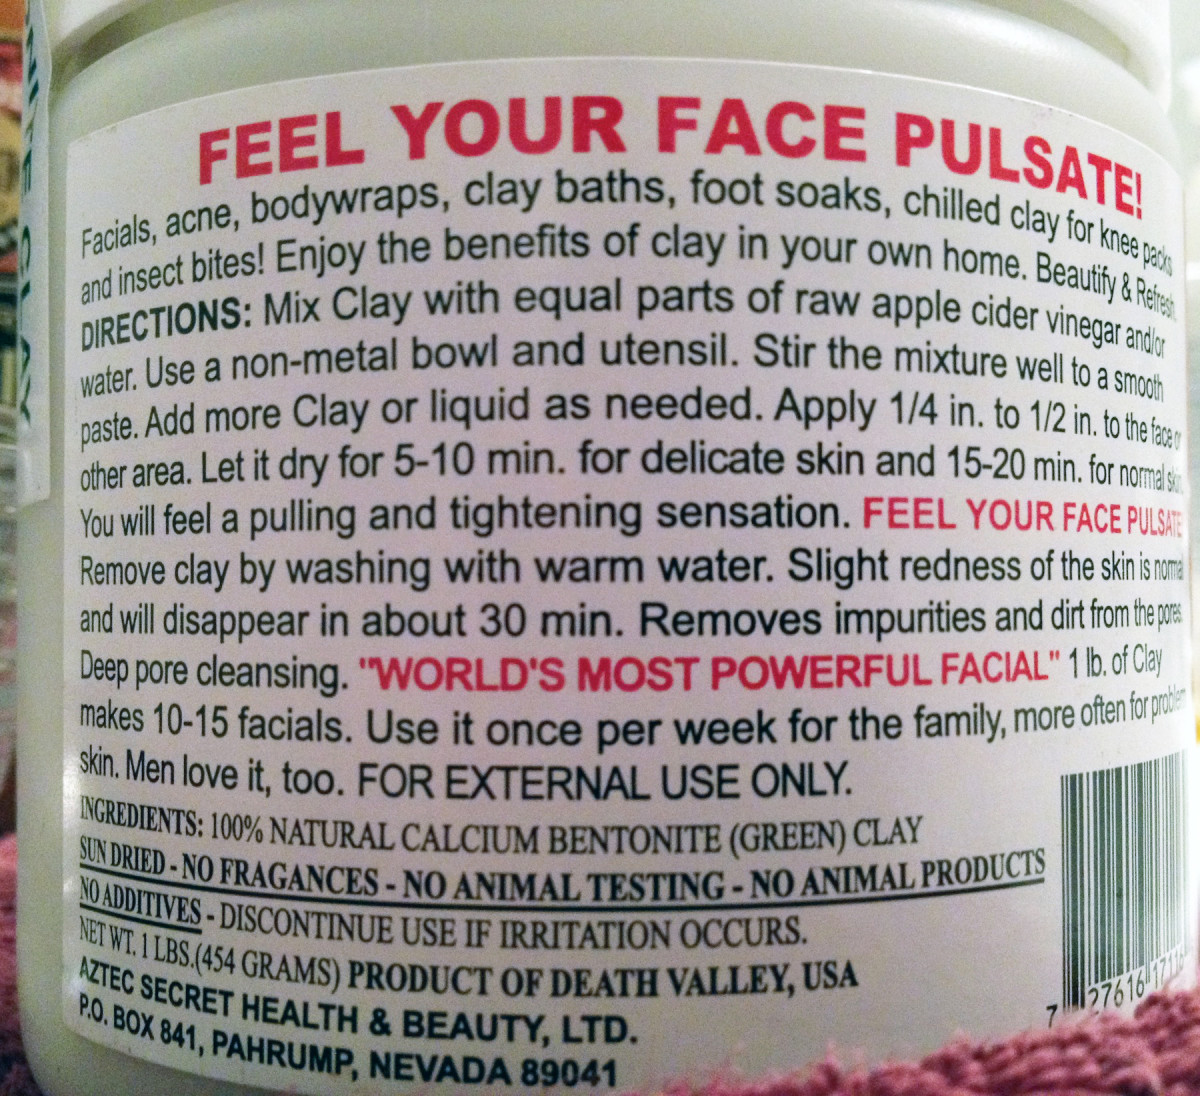 Clay mask ingredients: FEEL YOUR FACE PULSATE.